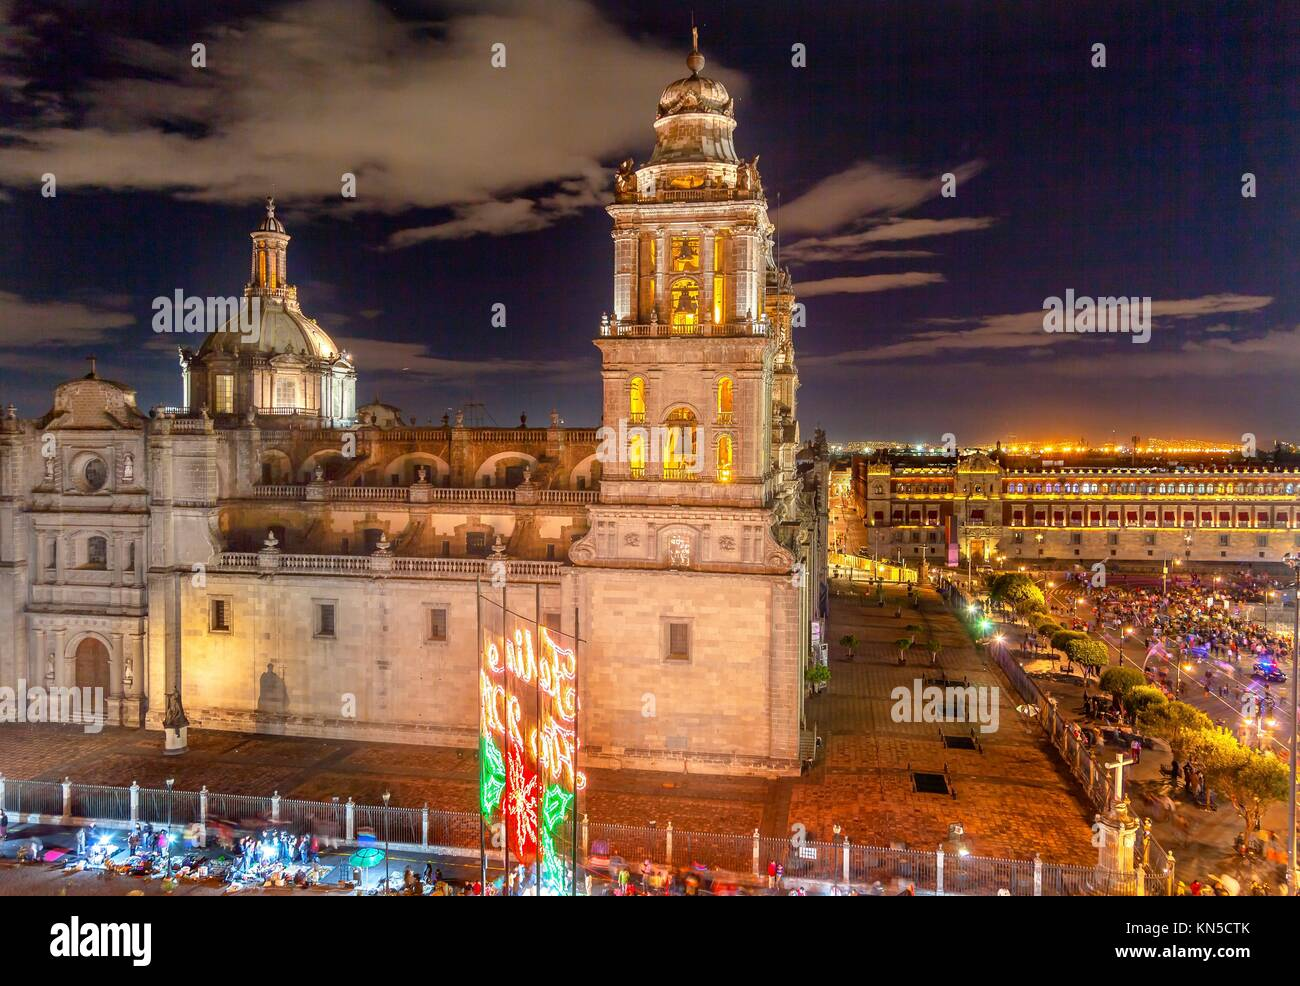 Metropolitan Cathedral and President's Palace in Zocalo, Center of Mexico City, at Night. - Stock Image